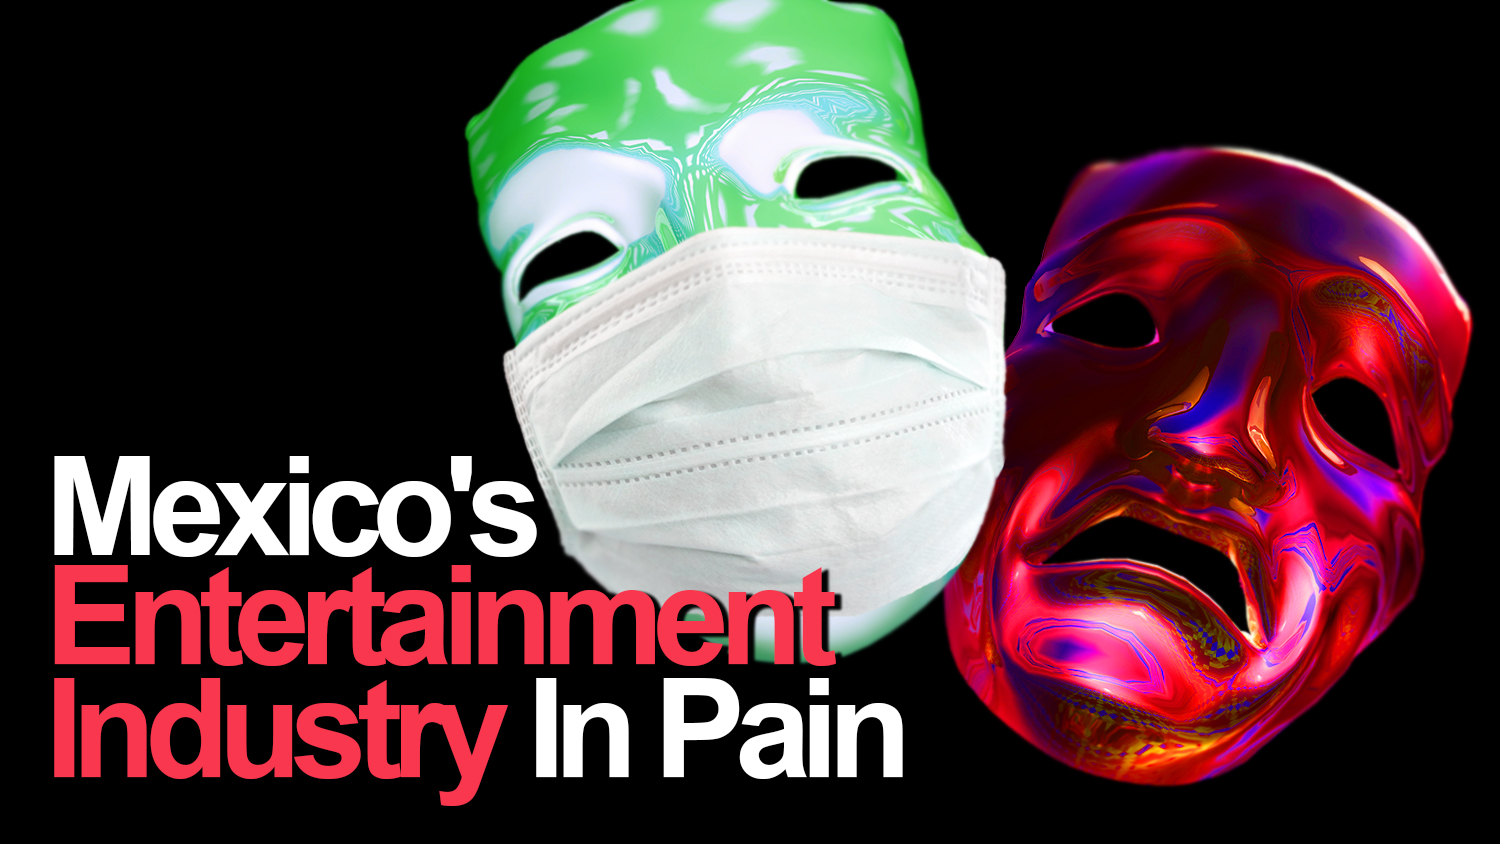 Mexicos Entertainment Industry in Pain